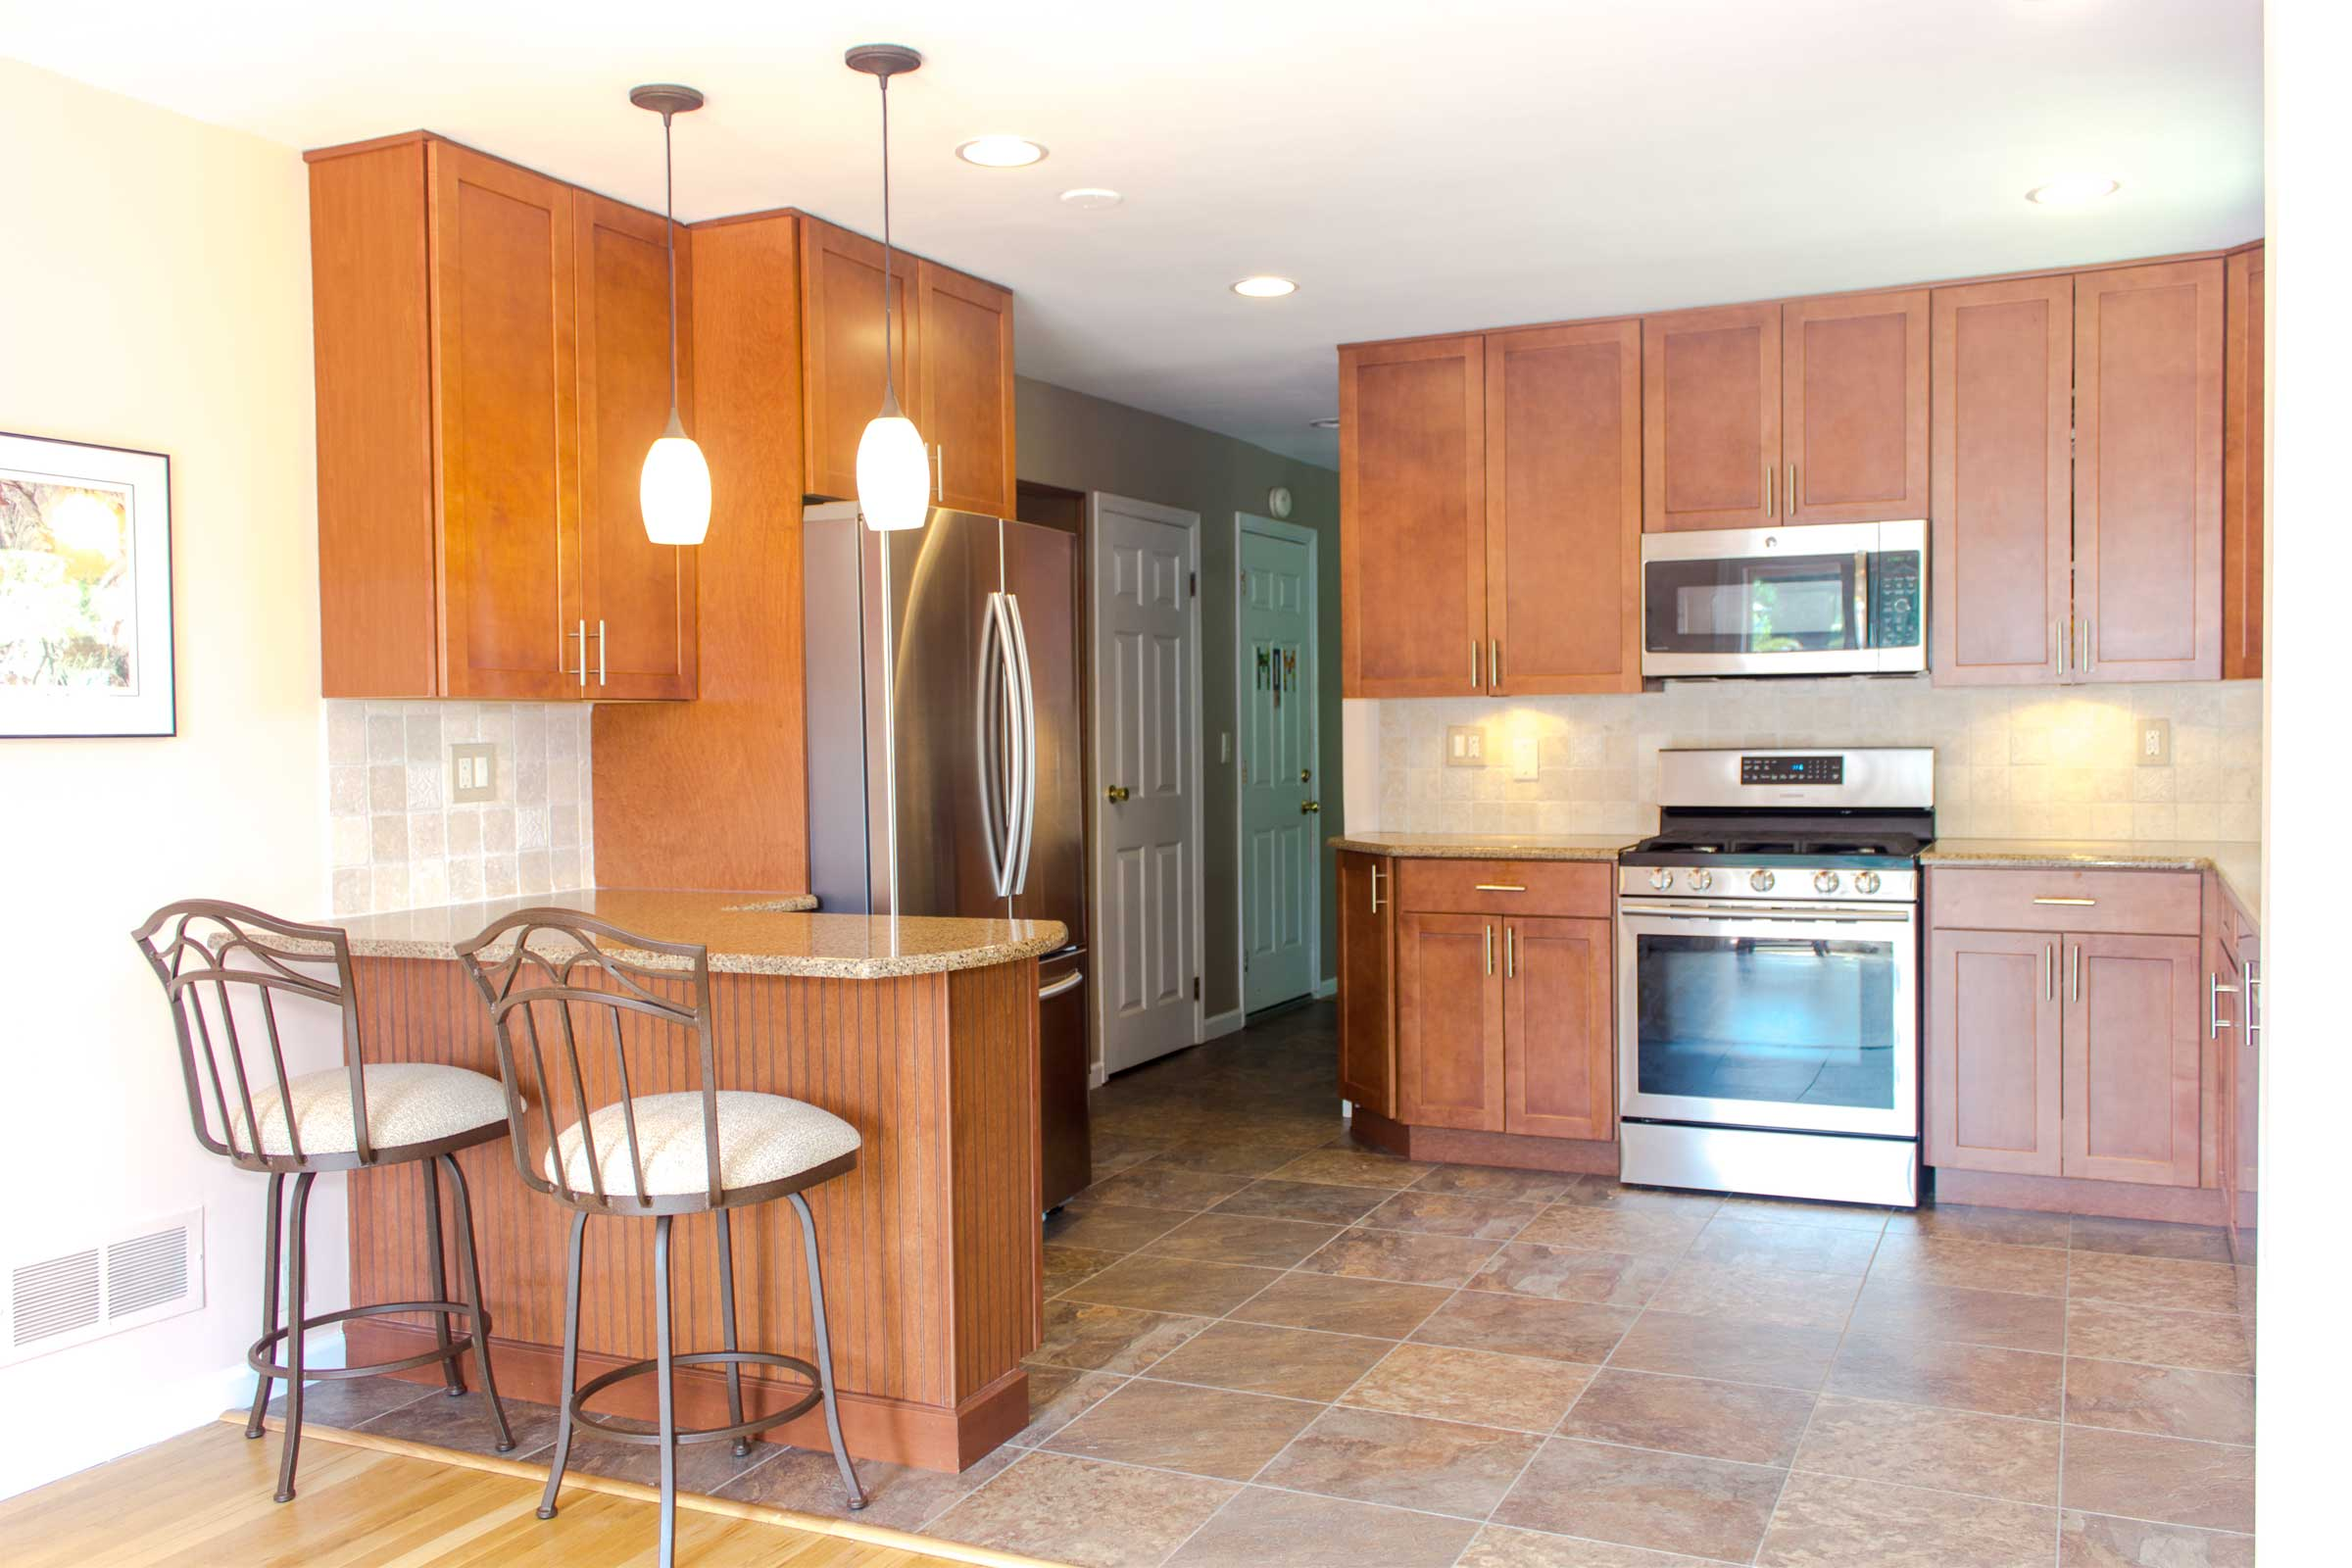 The Basic Kitchen Co._Kitchen Renovation_Highbridge NJ_August 2014